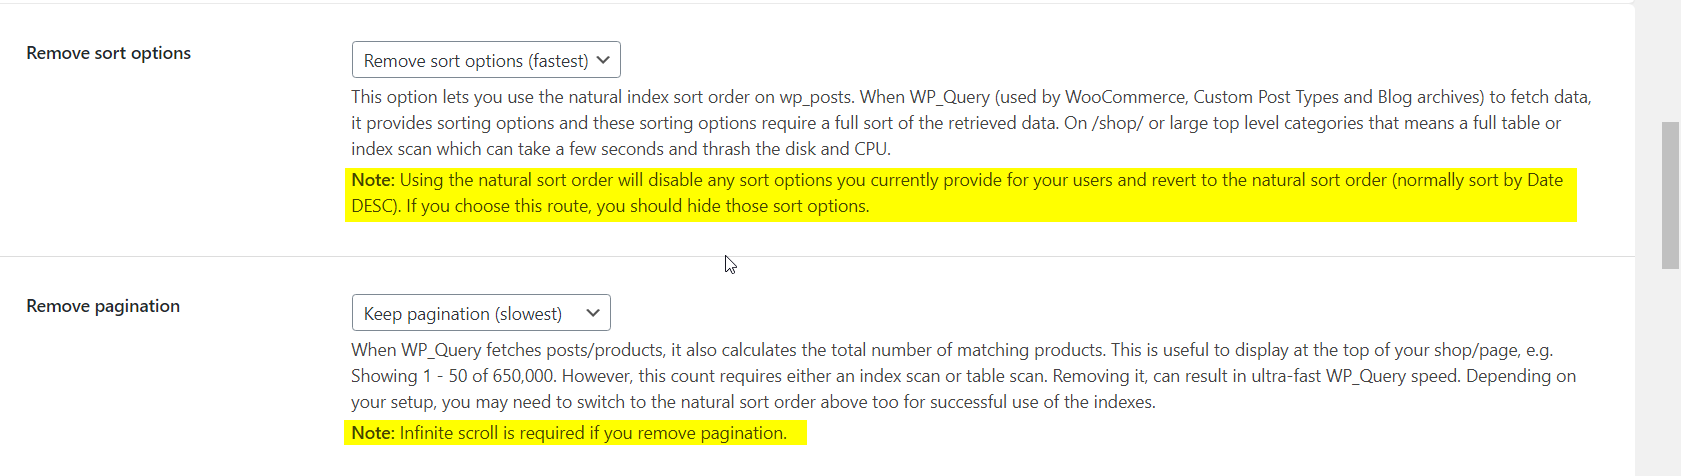 Why does pagination stop working when Scalability Pro is enabled?